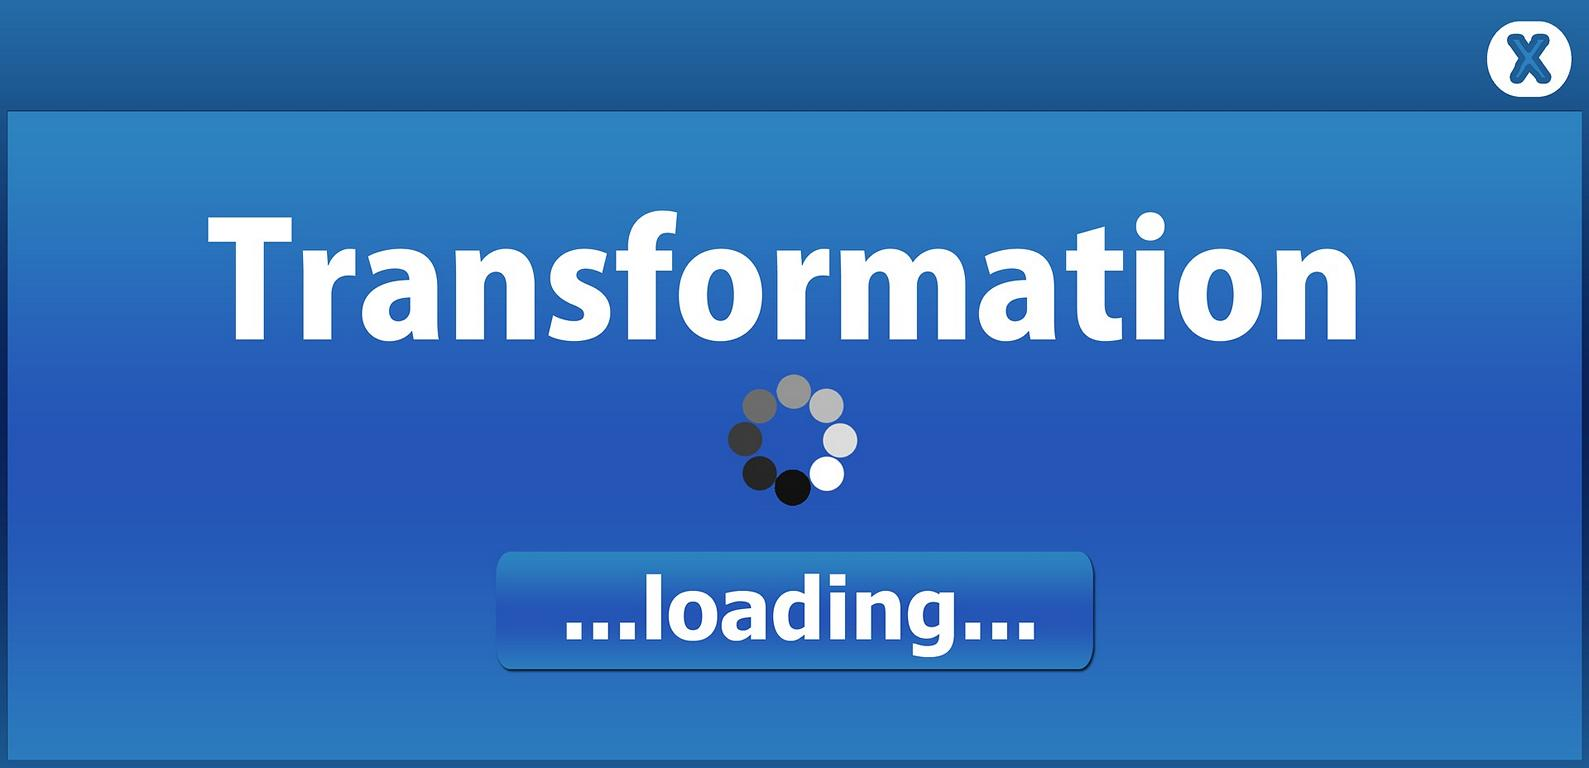 Wie gelingt digitale Transformation